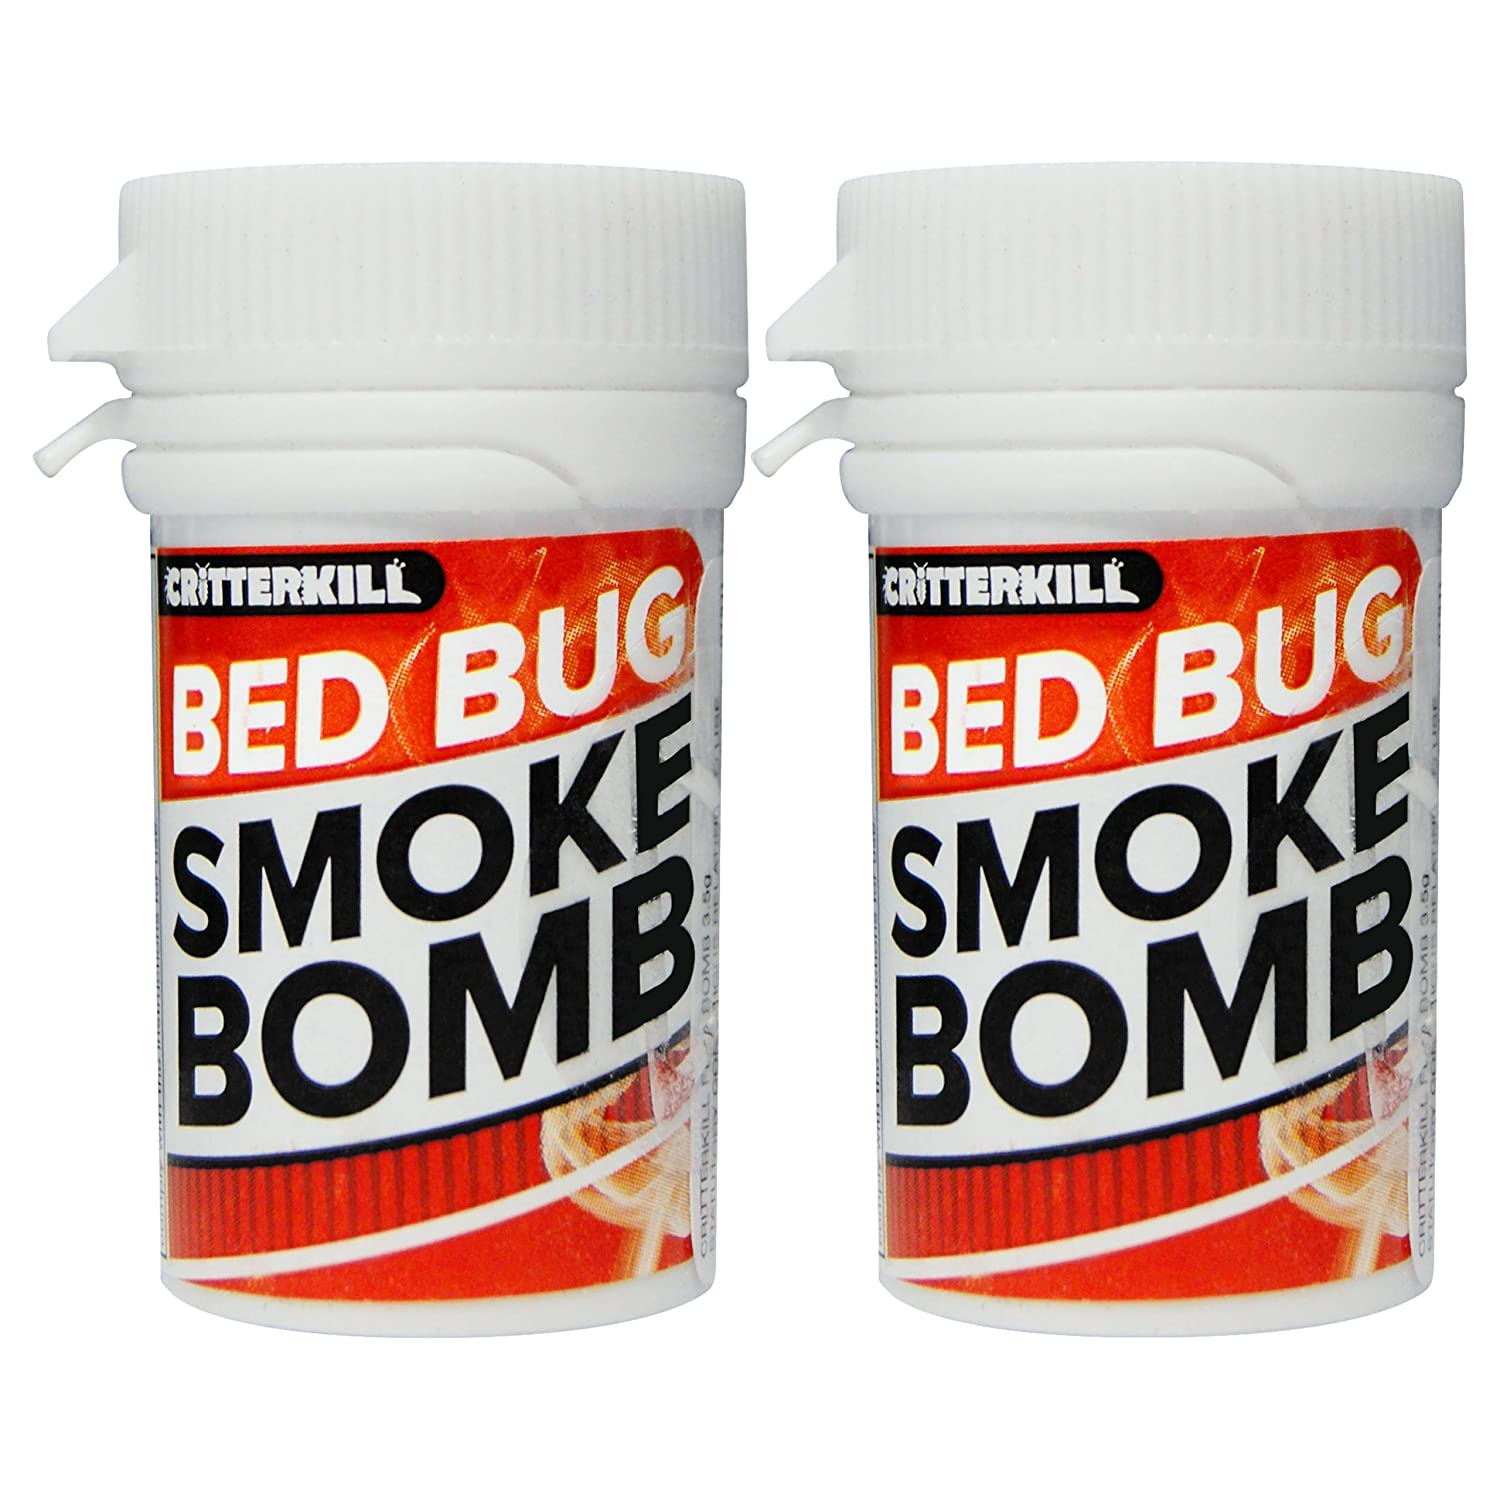 CritterKill Bed Bug Smoke Bomb Fogger Fumigator to Kill Bedbugs | Professional Strength (10)